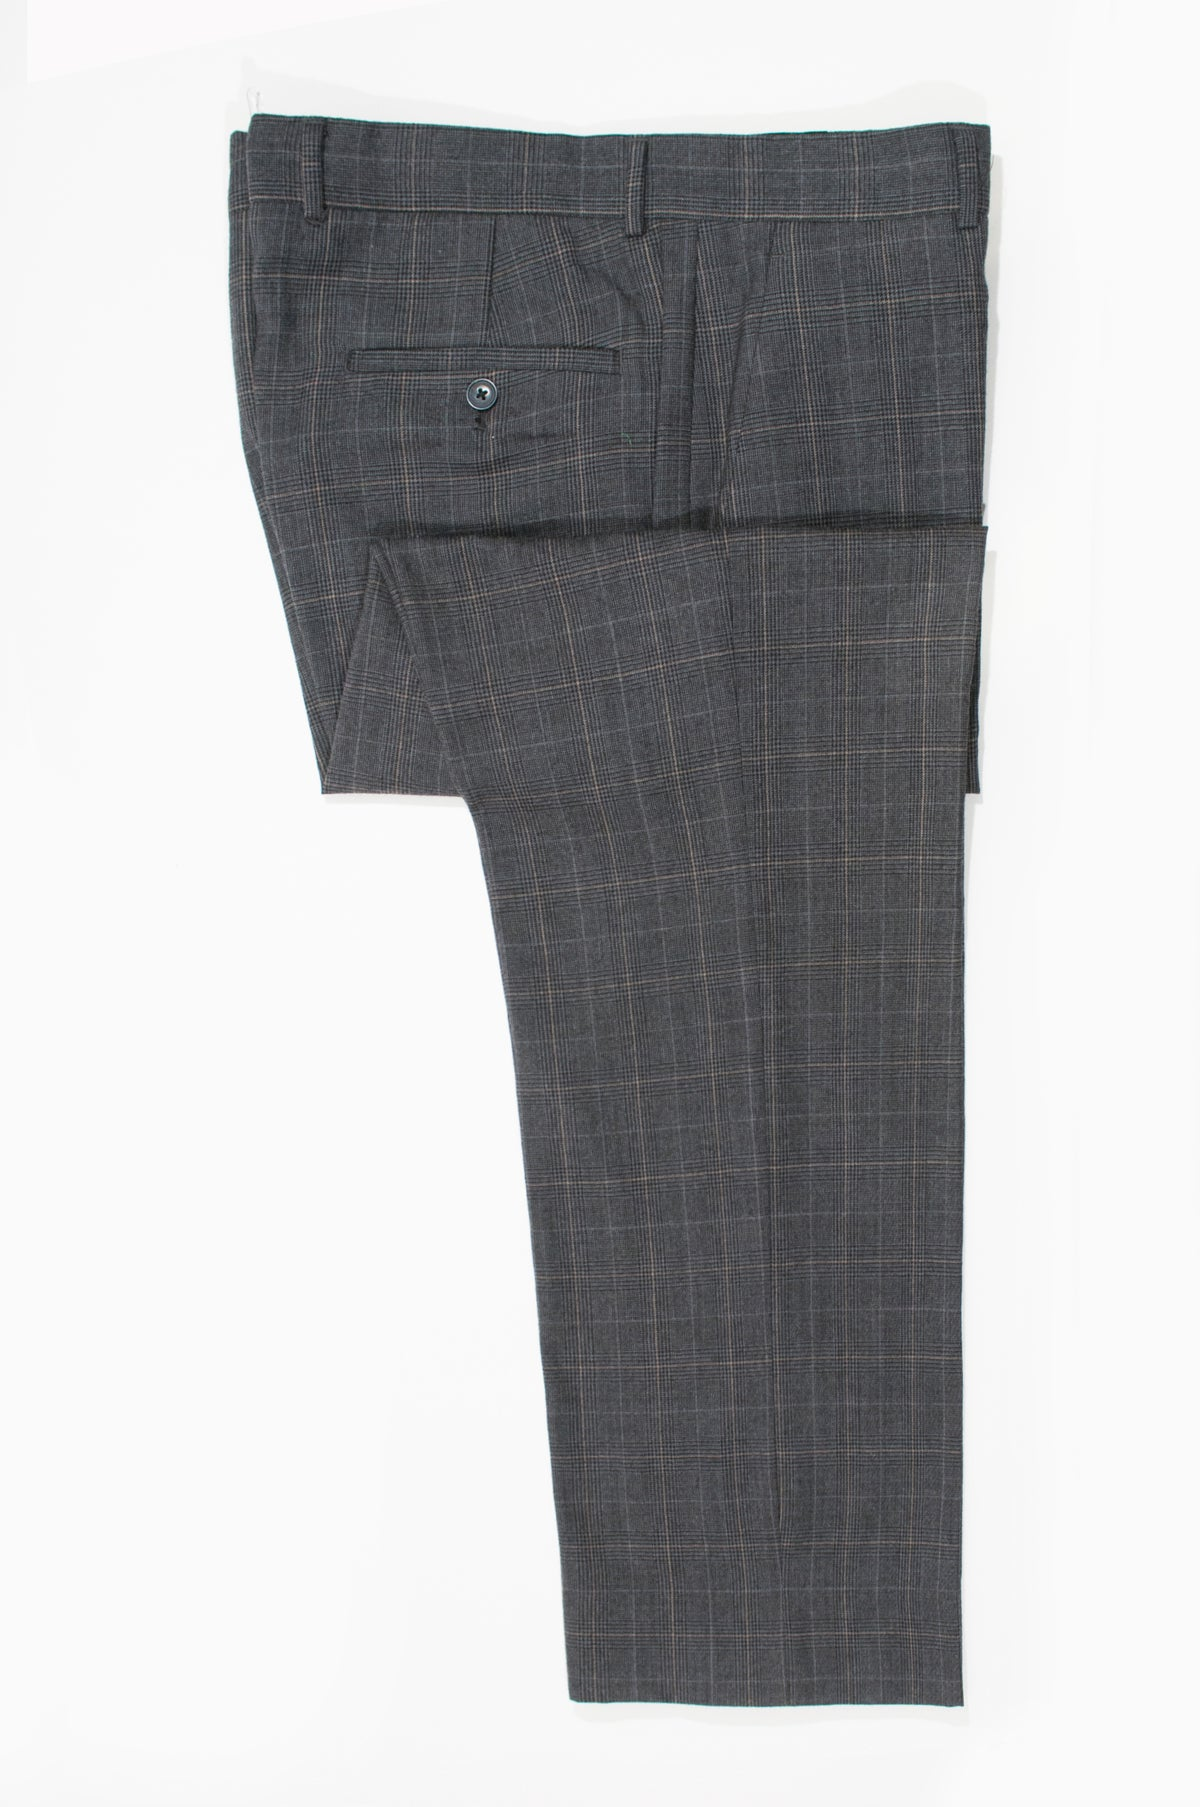 Michael Kors Grey Check Wool Trousers